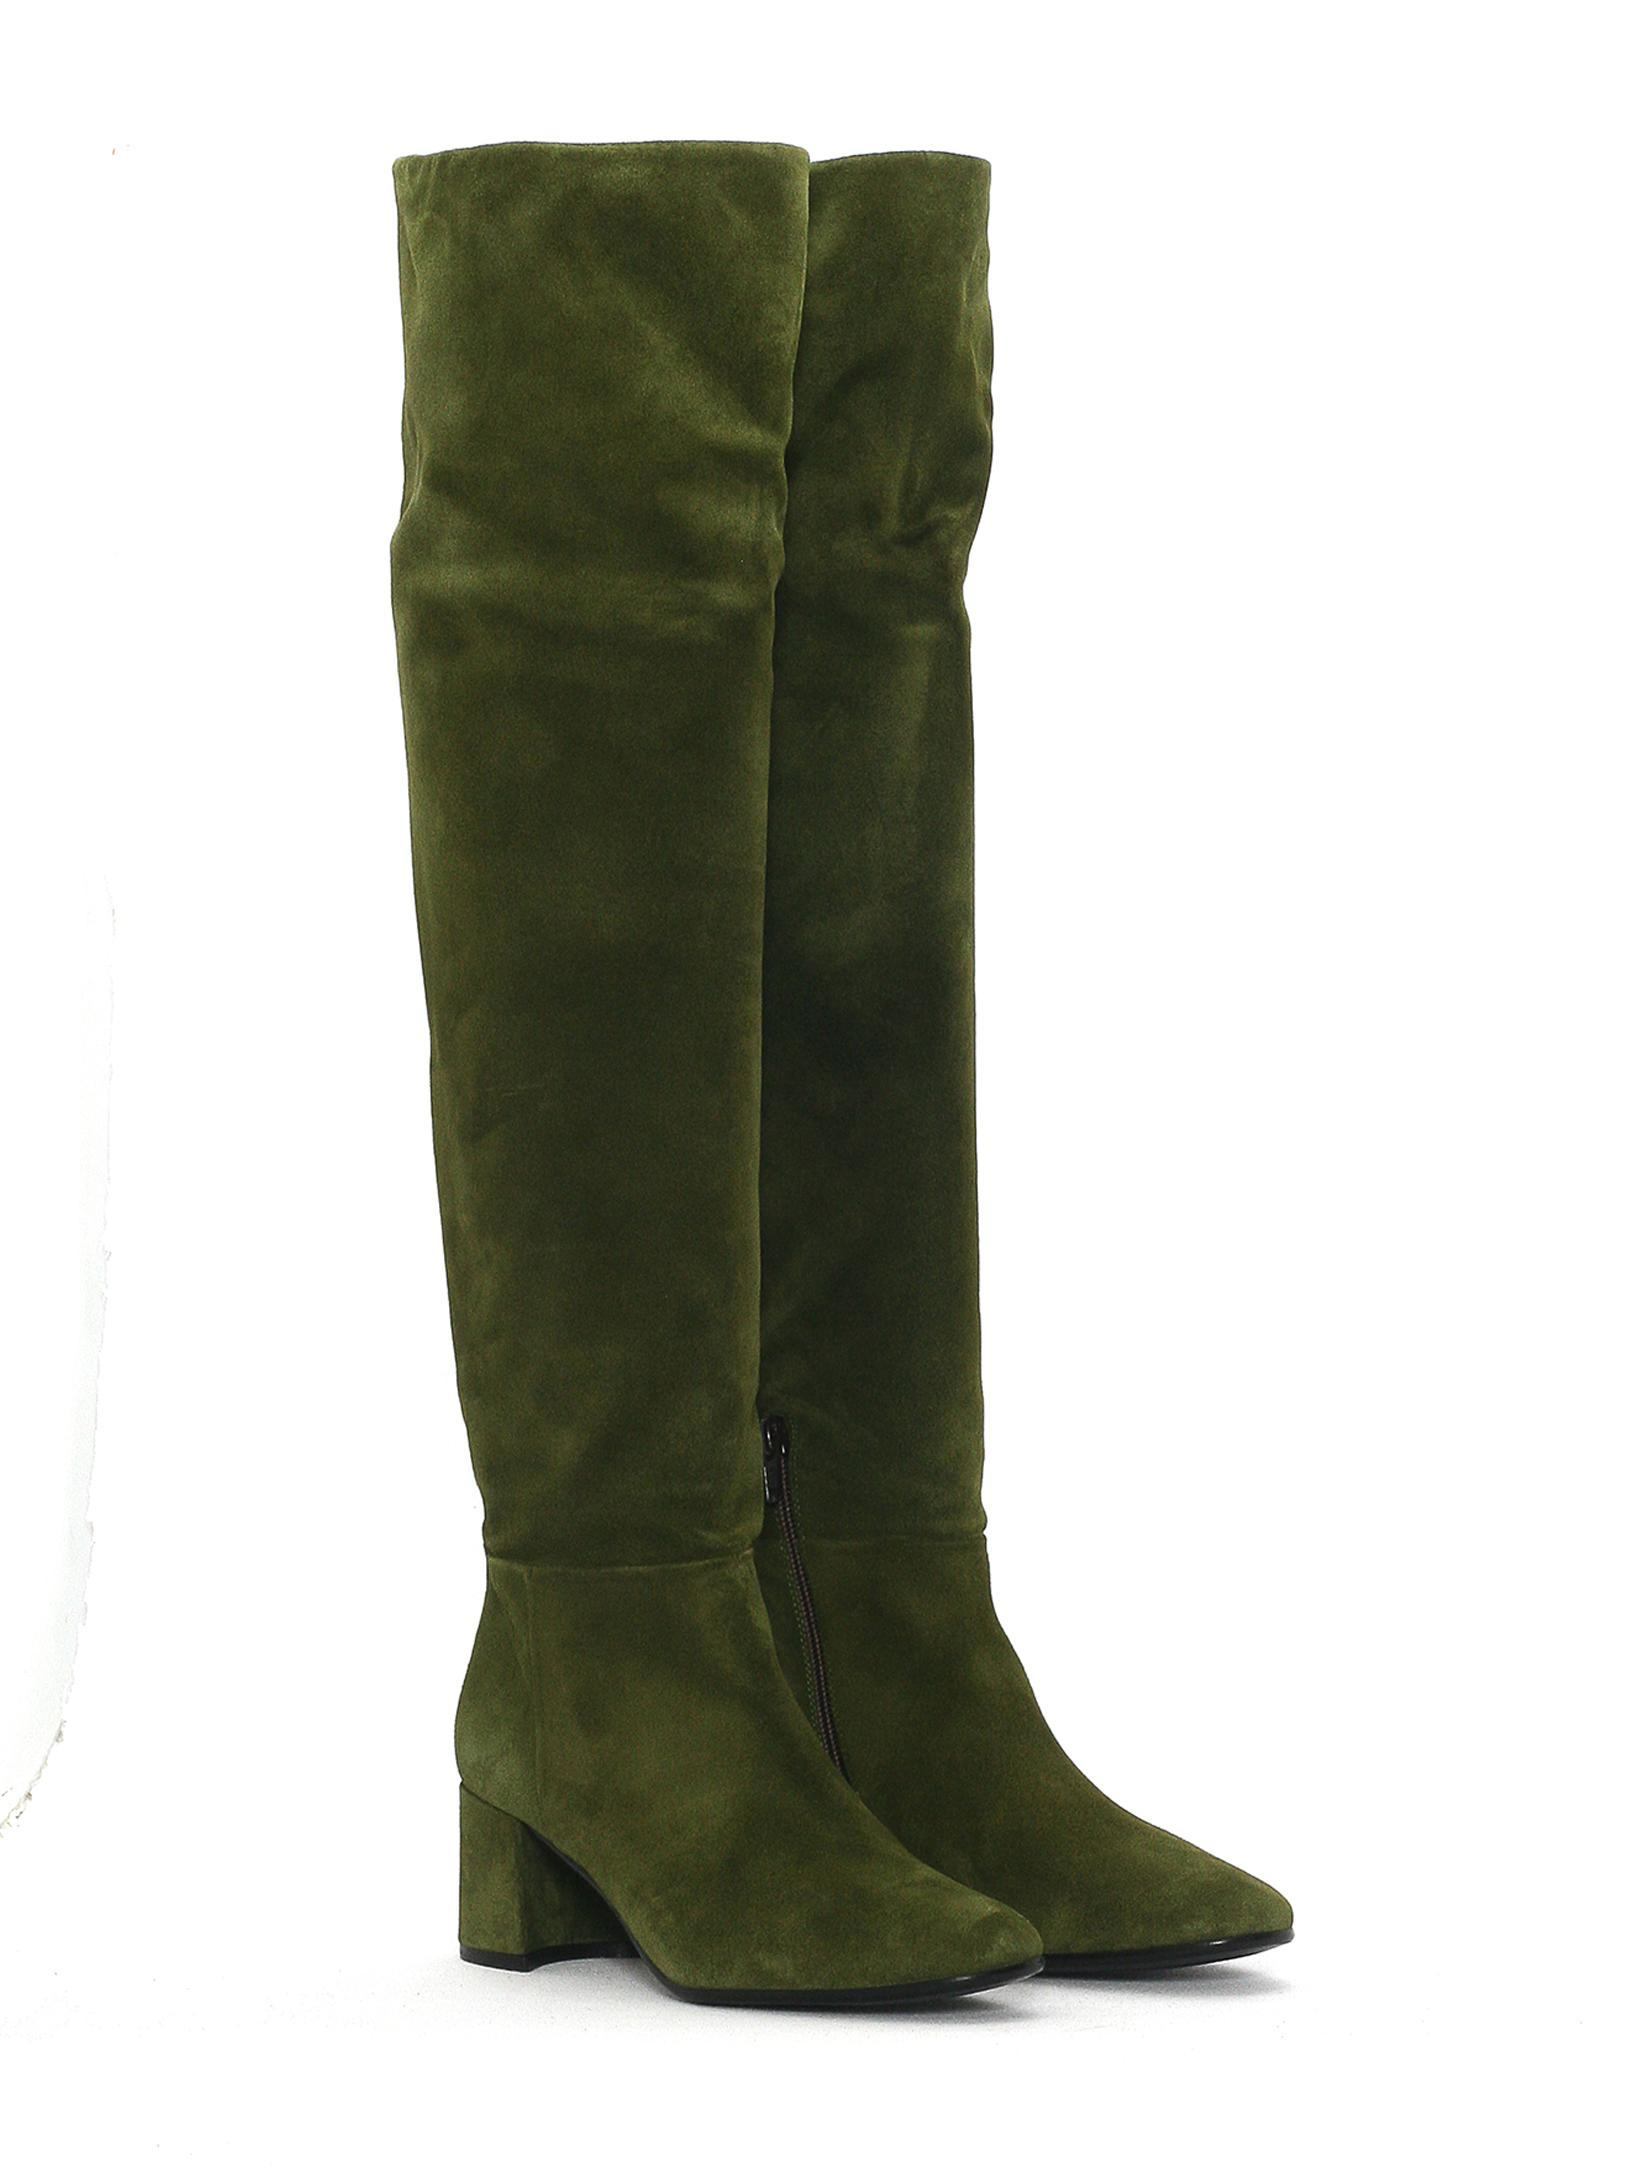 BOTA BOSQUE VELOUR